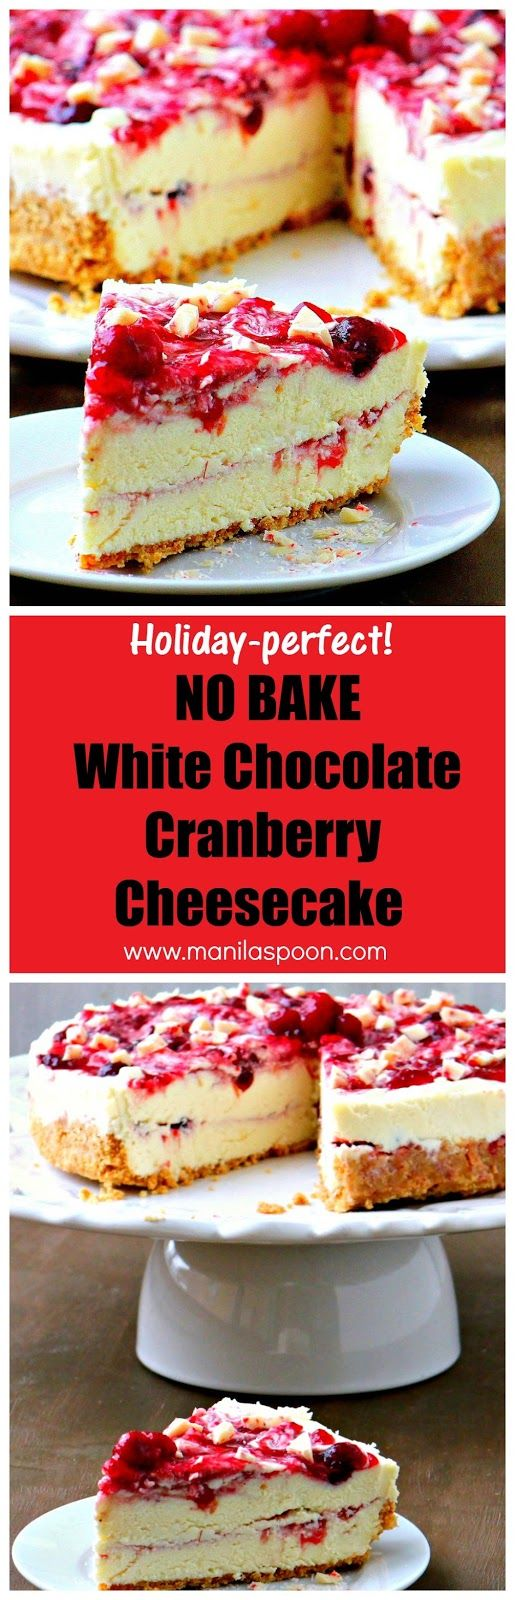 The perfect dessert for Valentine's Day! Use fresh or frozen cranberries to make this No Bake White Chocolate Cranberry Cheesecake - fruity, creamy, chocolaty and totally delicious! | manilaspoon.com